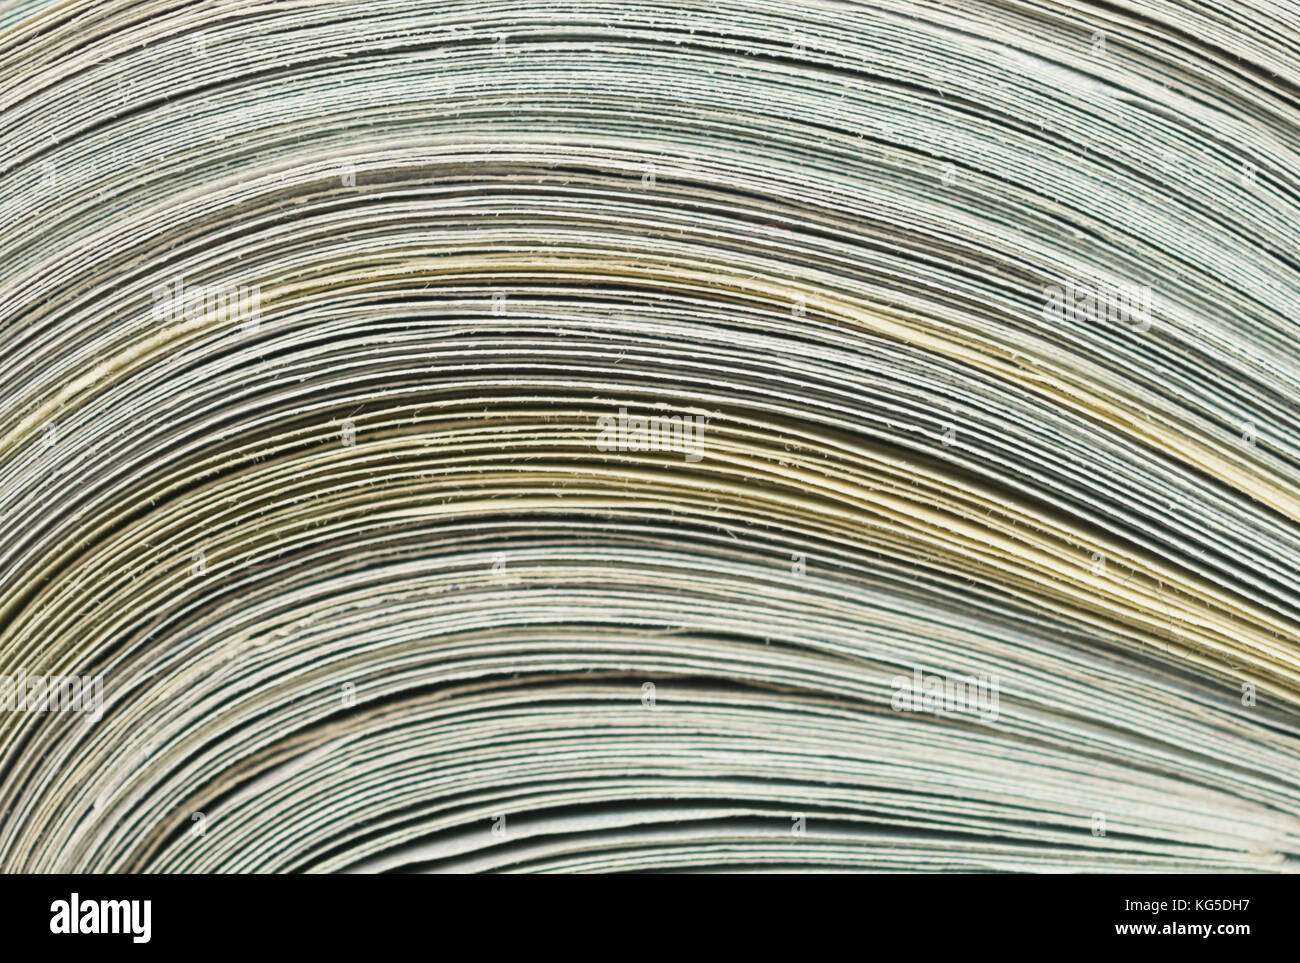 close up of paper, dollars roll - Stock Image